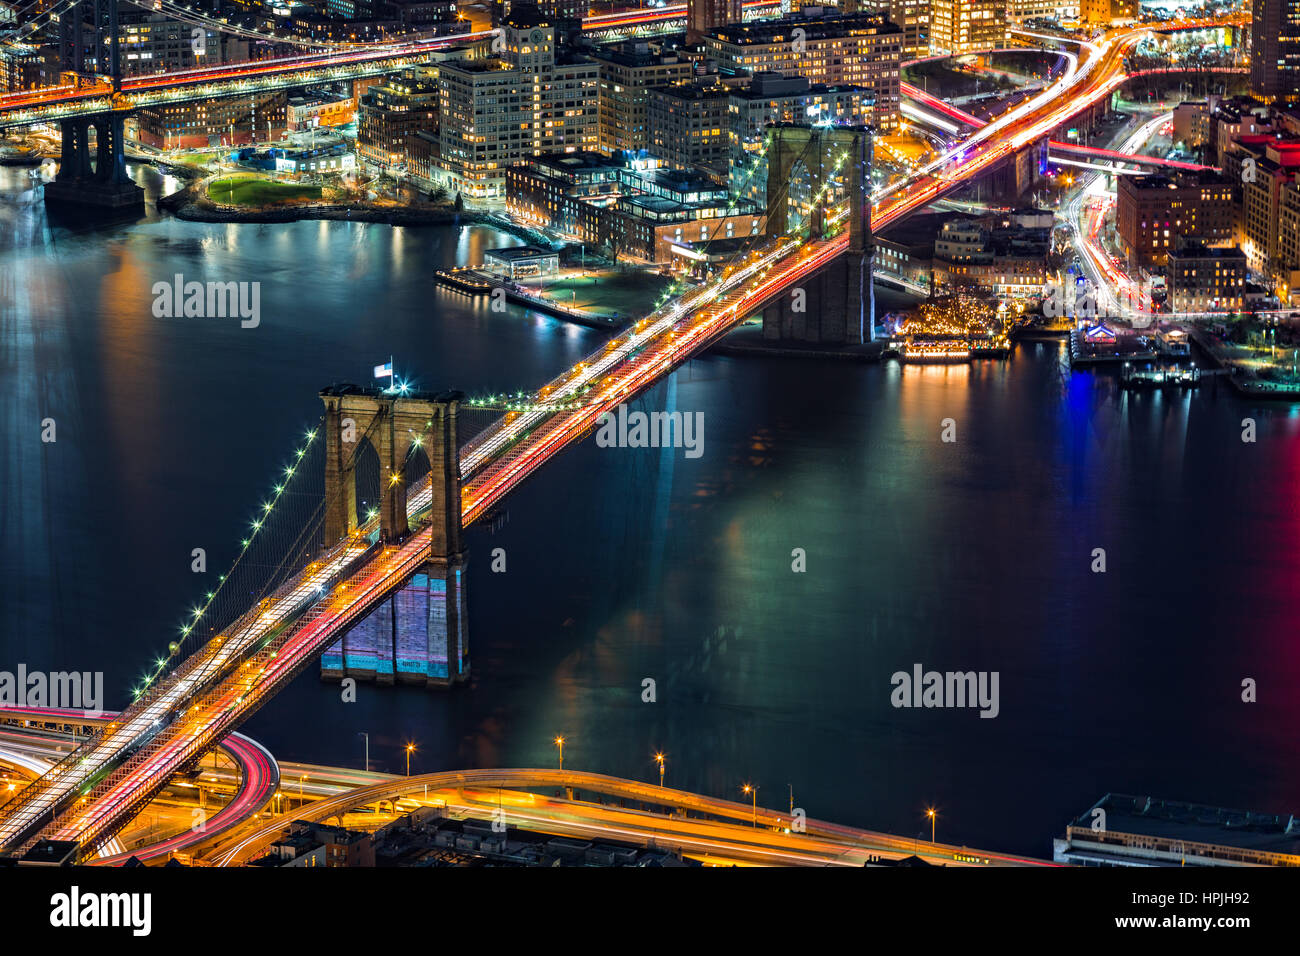 Luftaufnahme der Brooklyn Bridge bei Nacht in New York City Stockbild